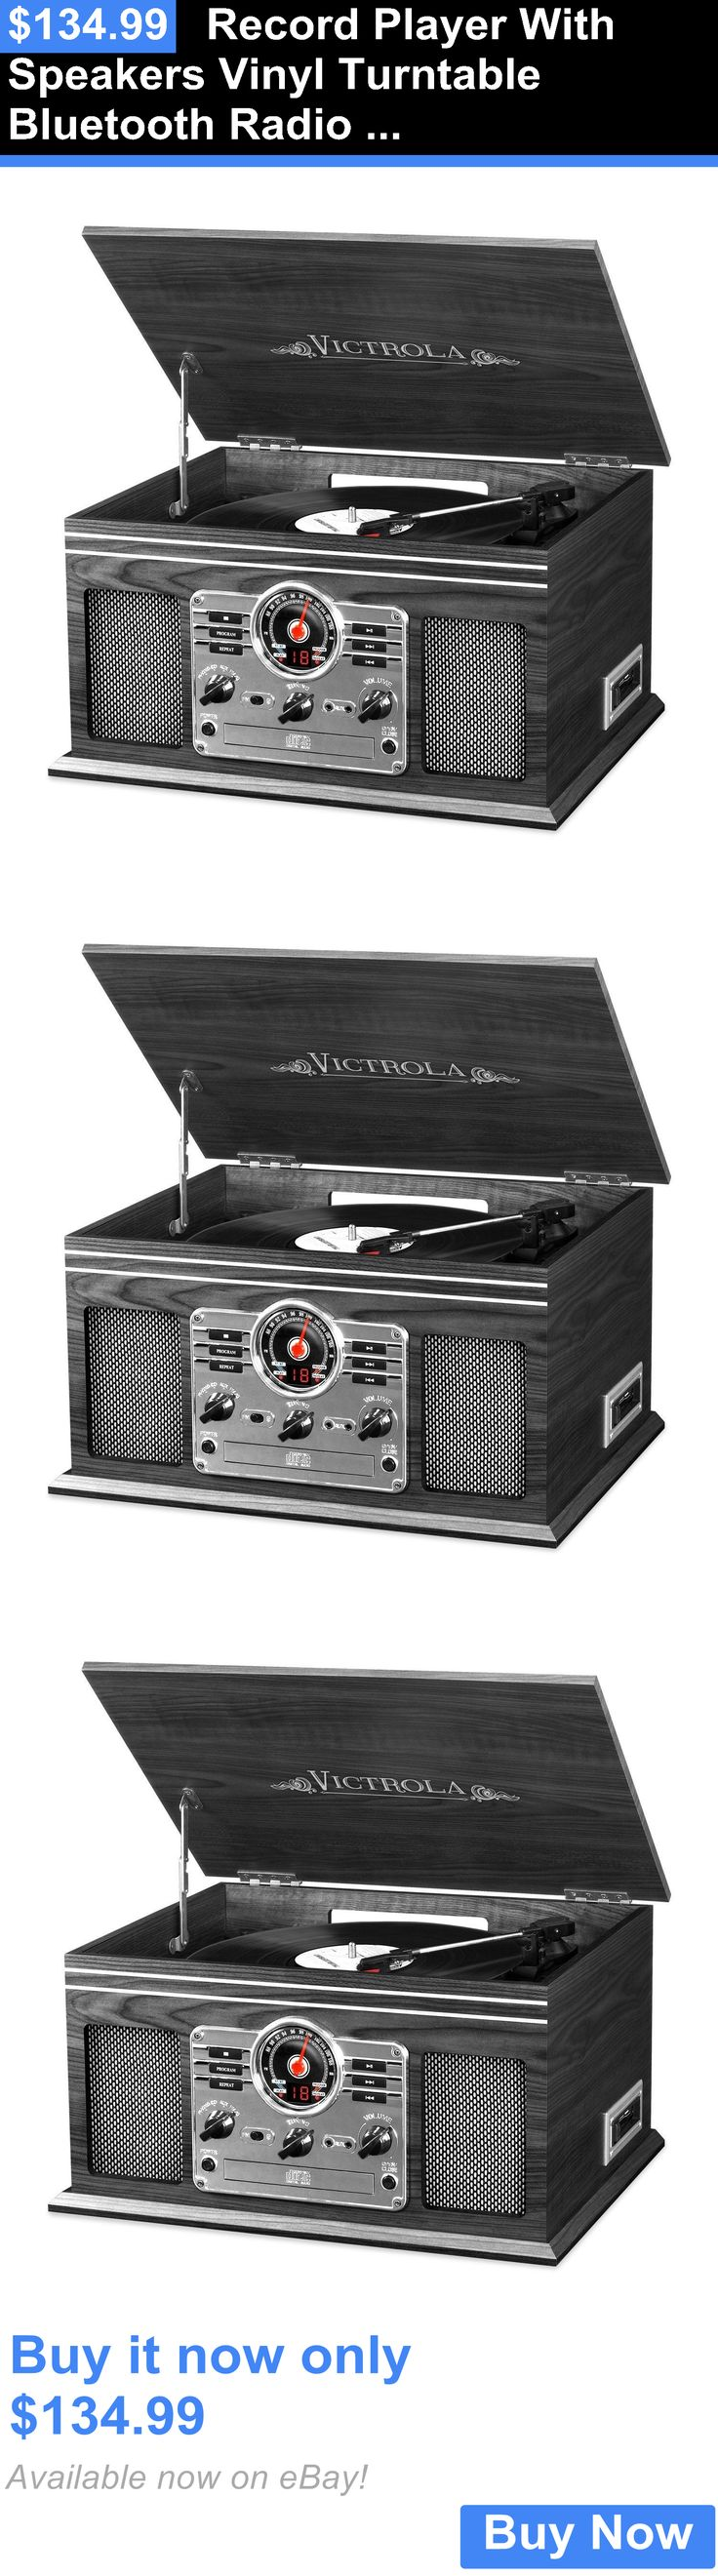 Record Players Home Turntables: Record Player With Speakers Vinyl Turntable Bluetooth Radio Casette Cd New BUY IT NOW ONLY: $134.99